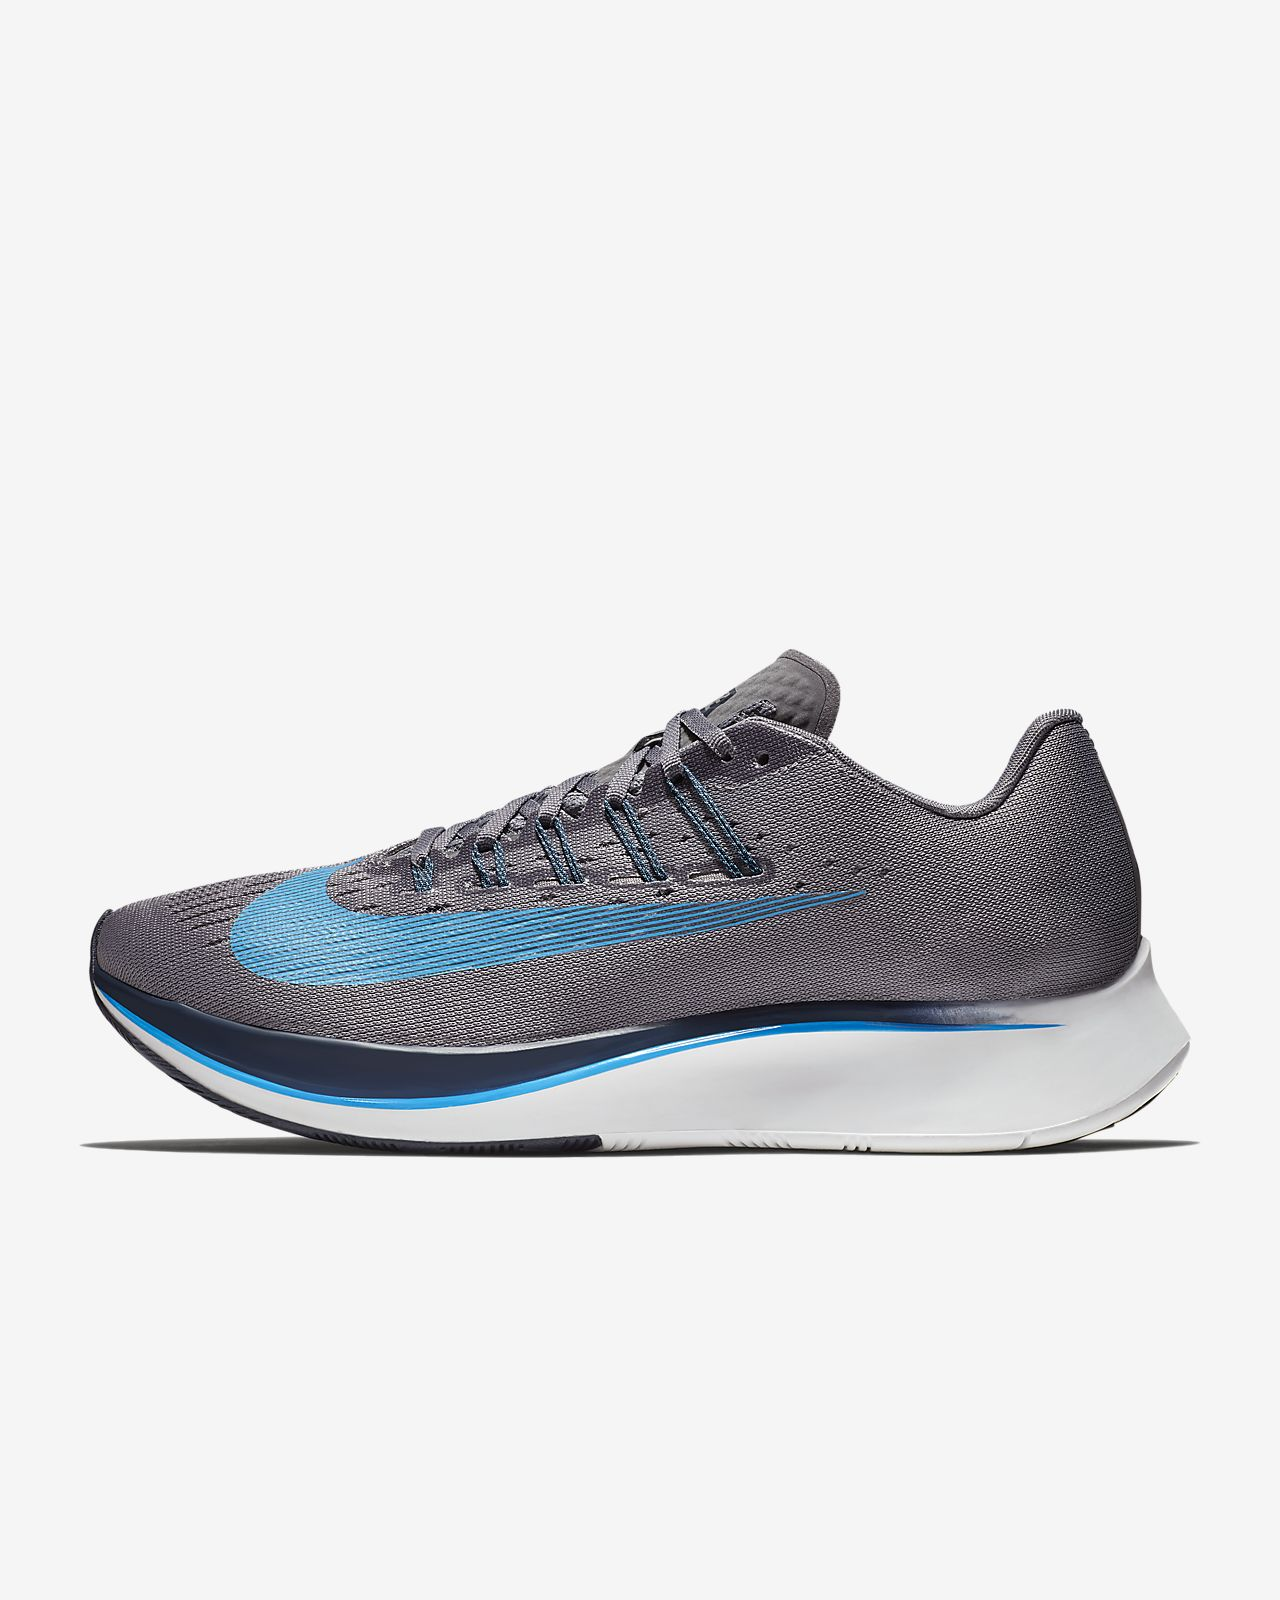 a186c03fbbc7 Nike Zoom Fly Men s Running Shoe. Nike.com MY